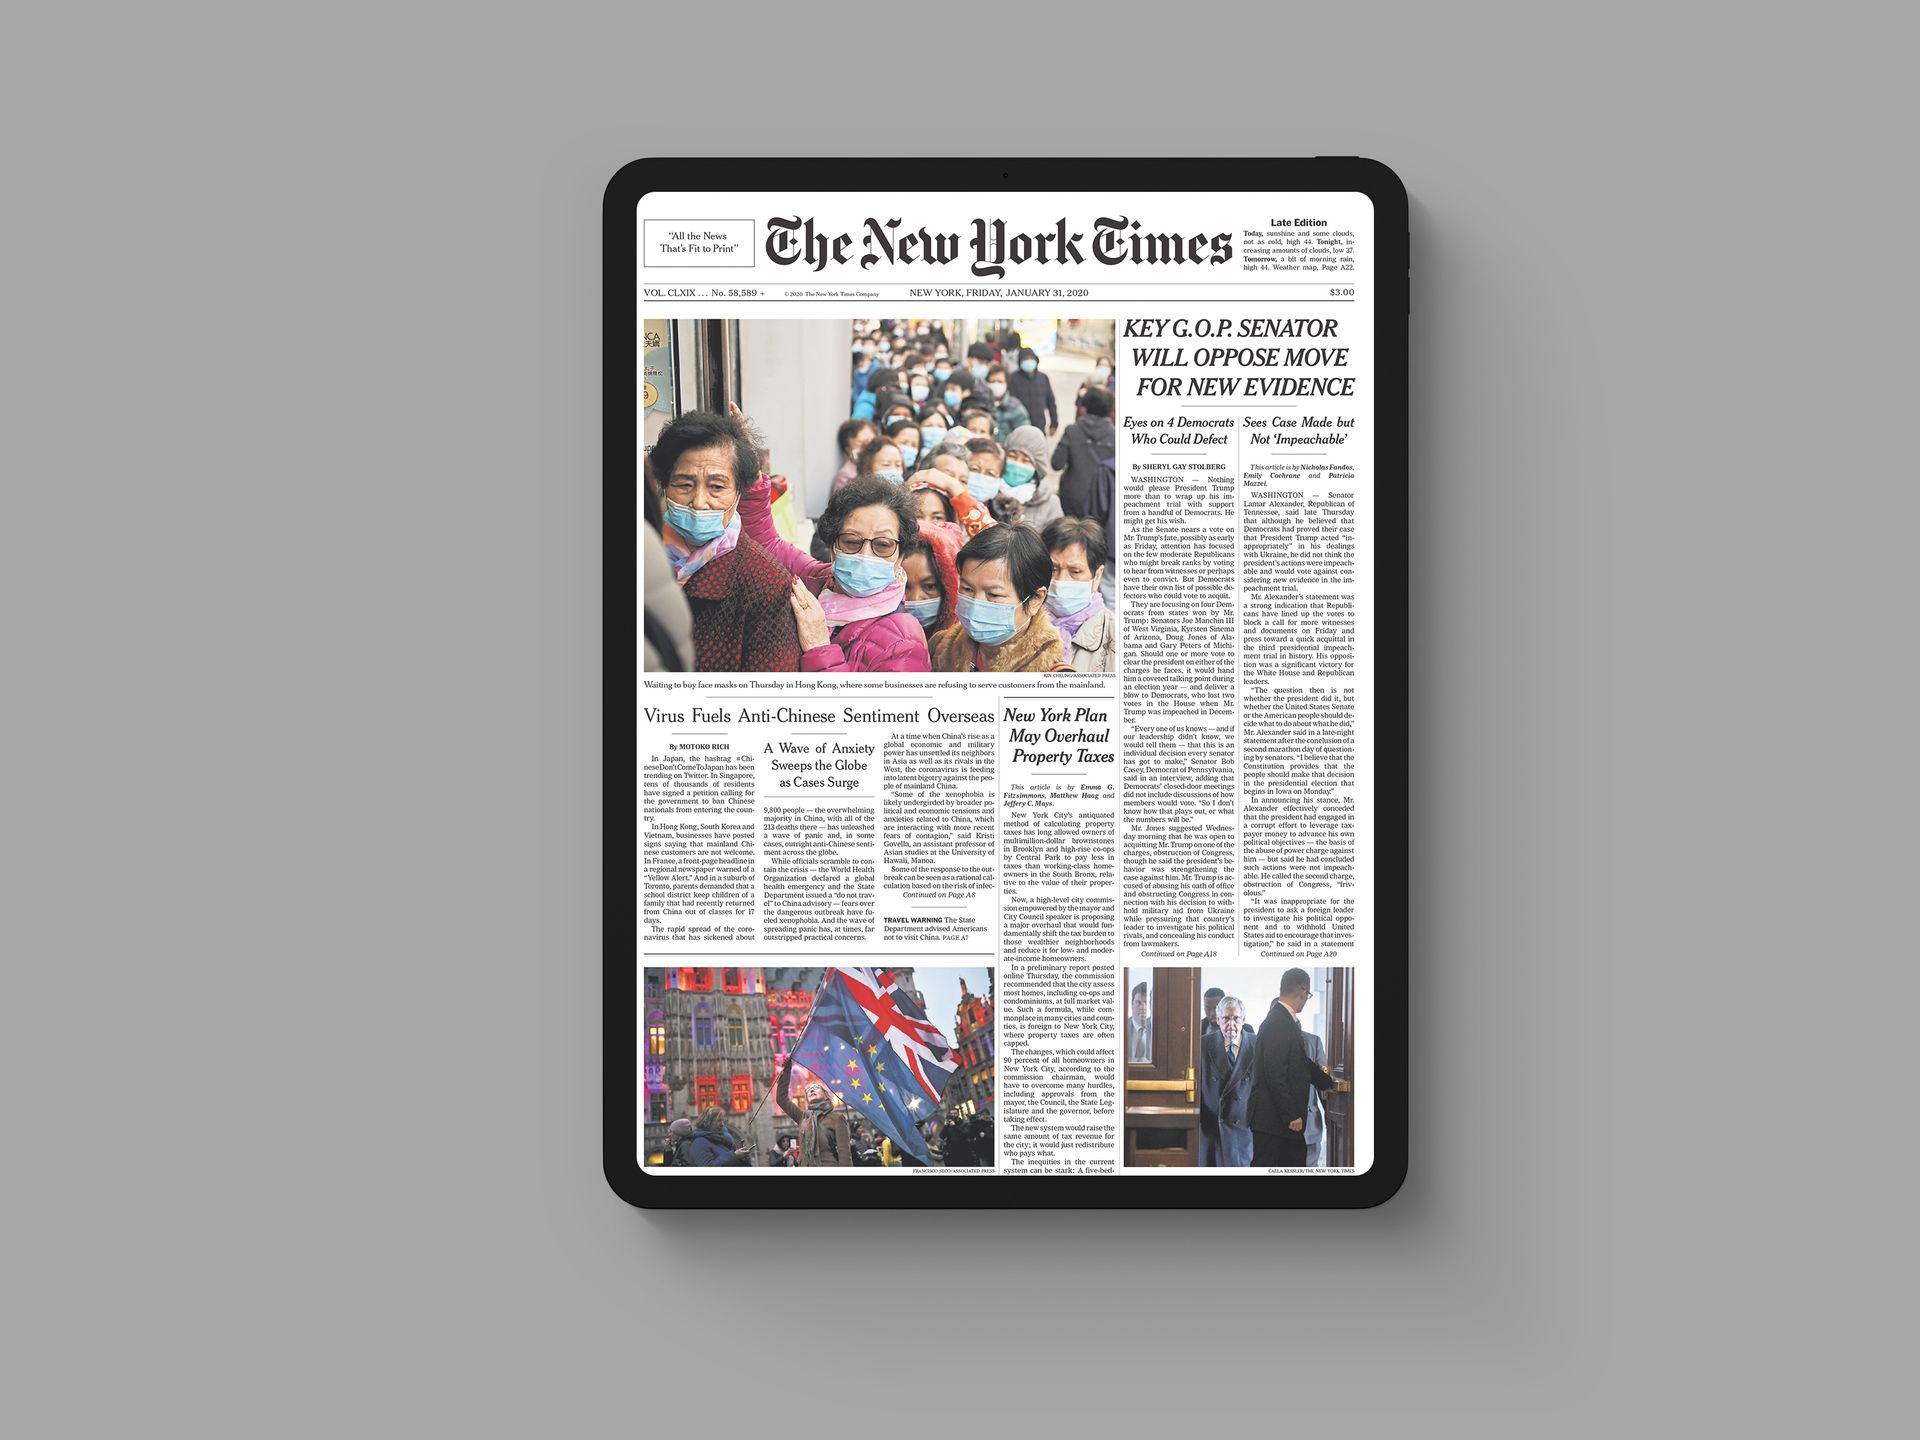 Save Today's New York Times Front Page with Shortcuts